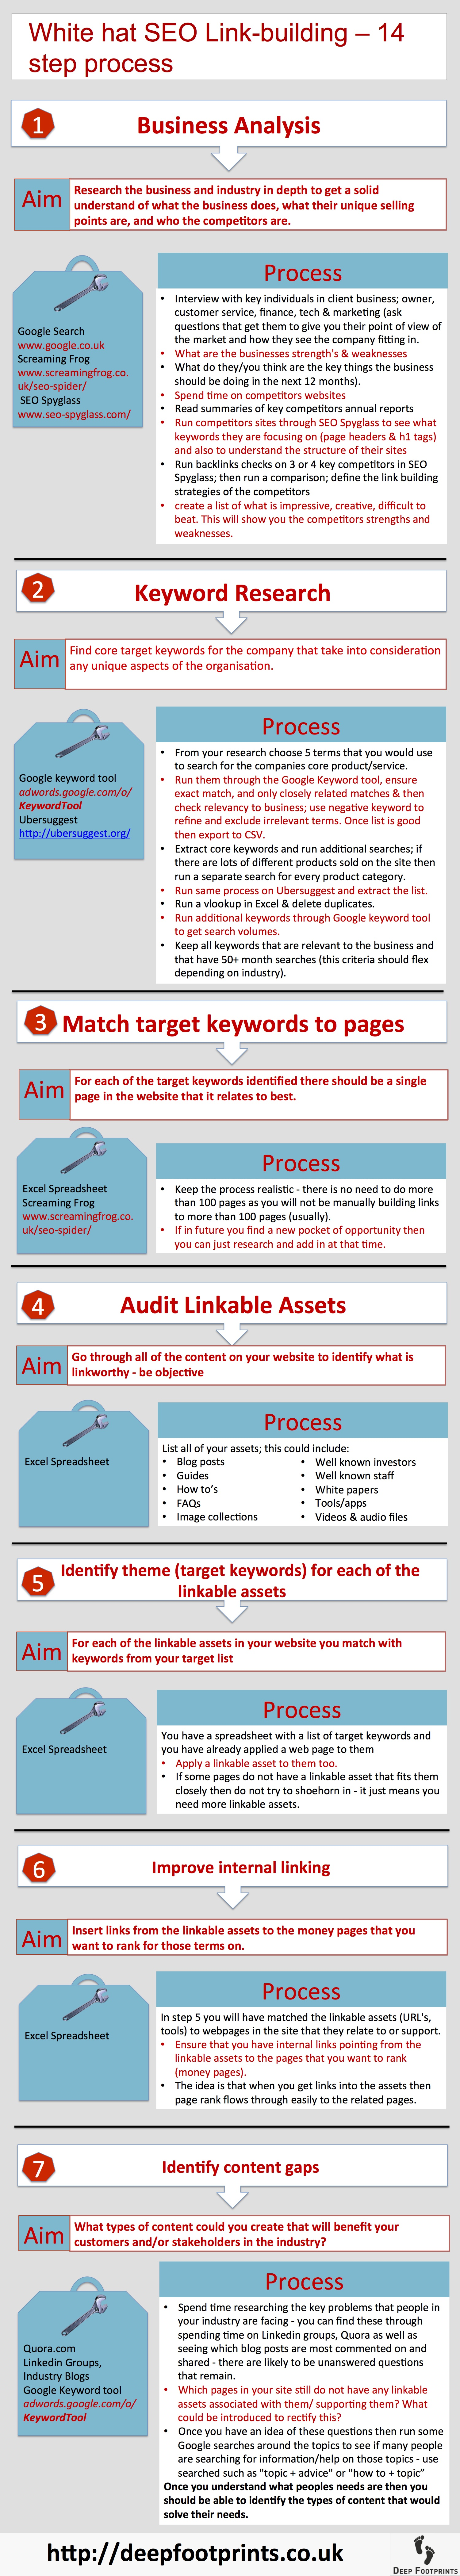 White hat SEO Linkbuilding infographic - 14 step process